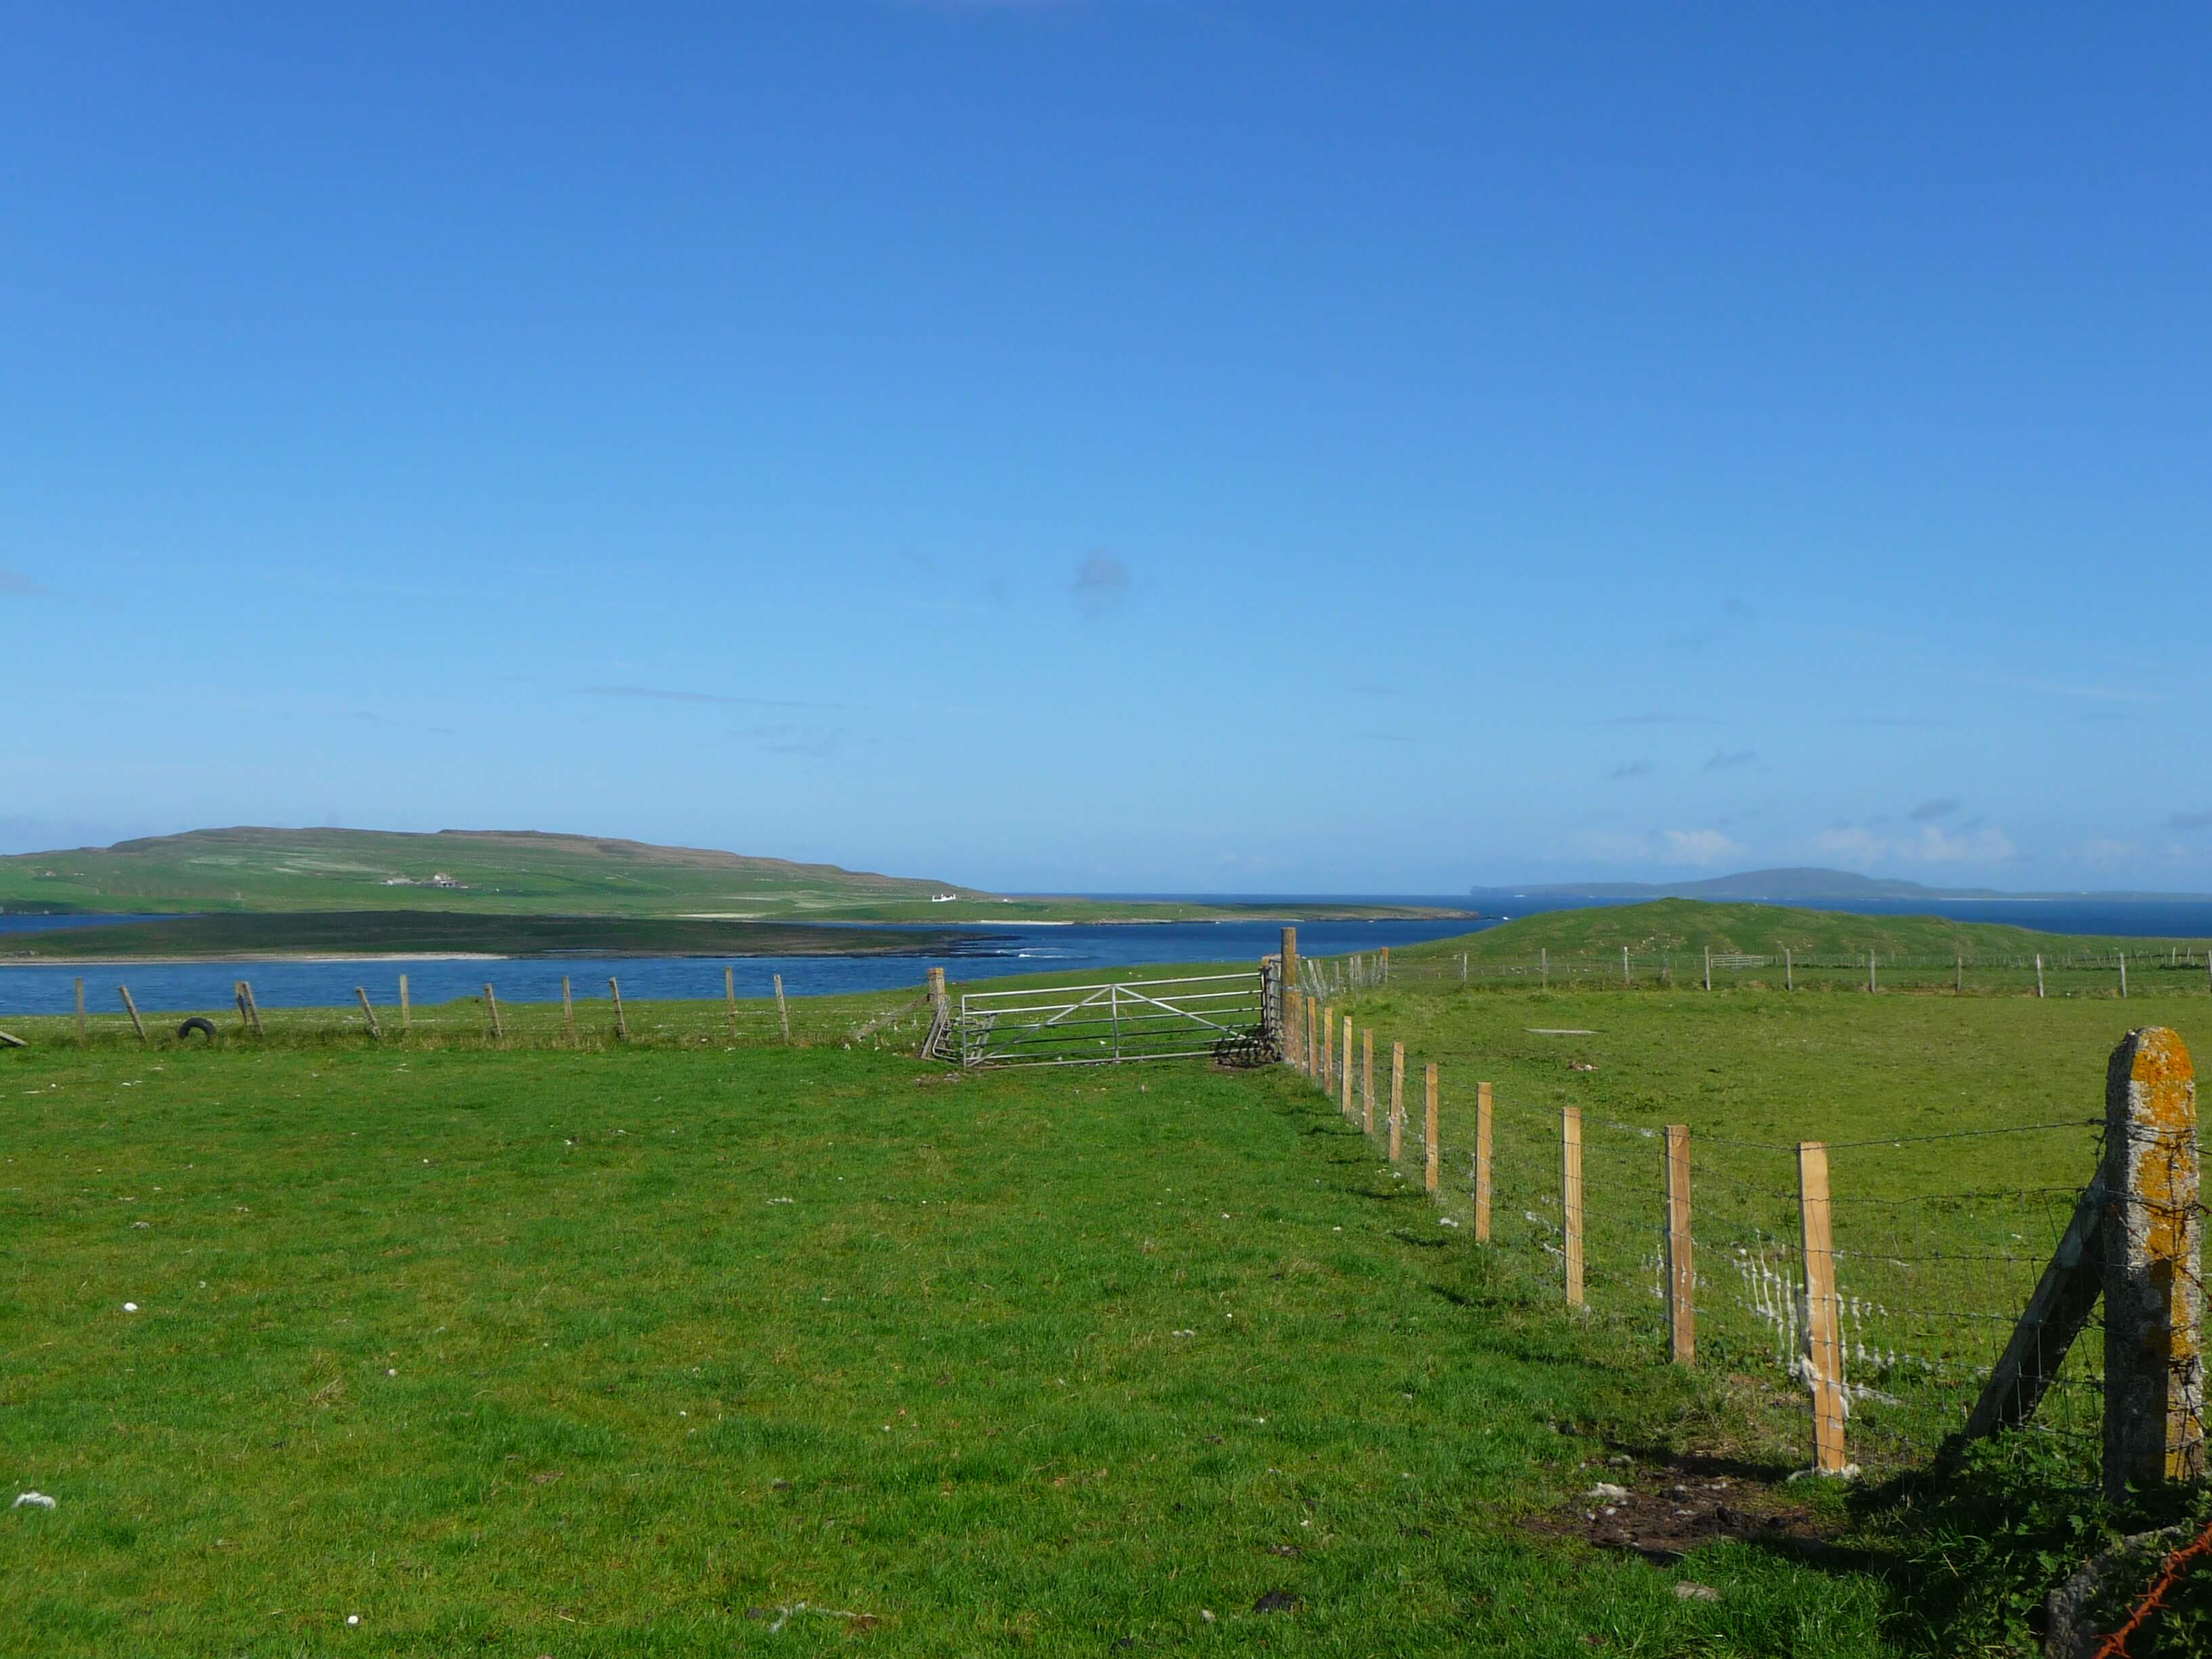 View from Egilsay, Orkney Islands, Scotland, UK